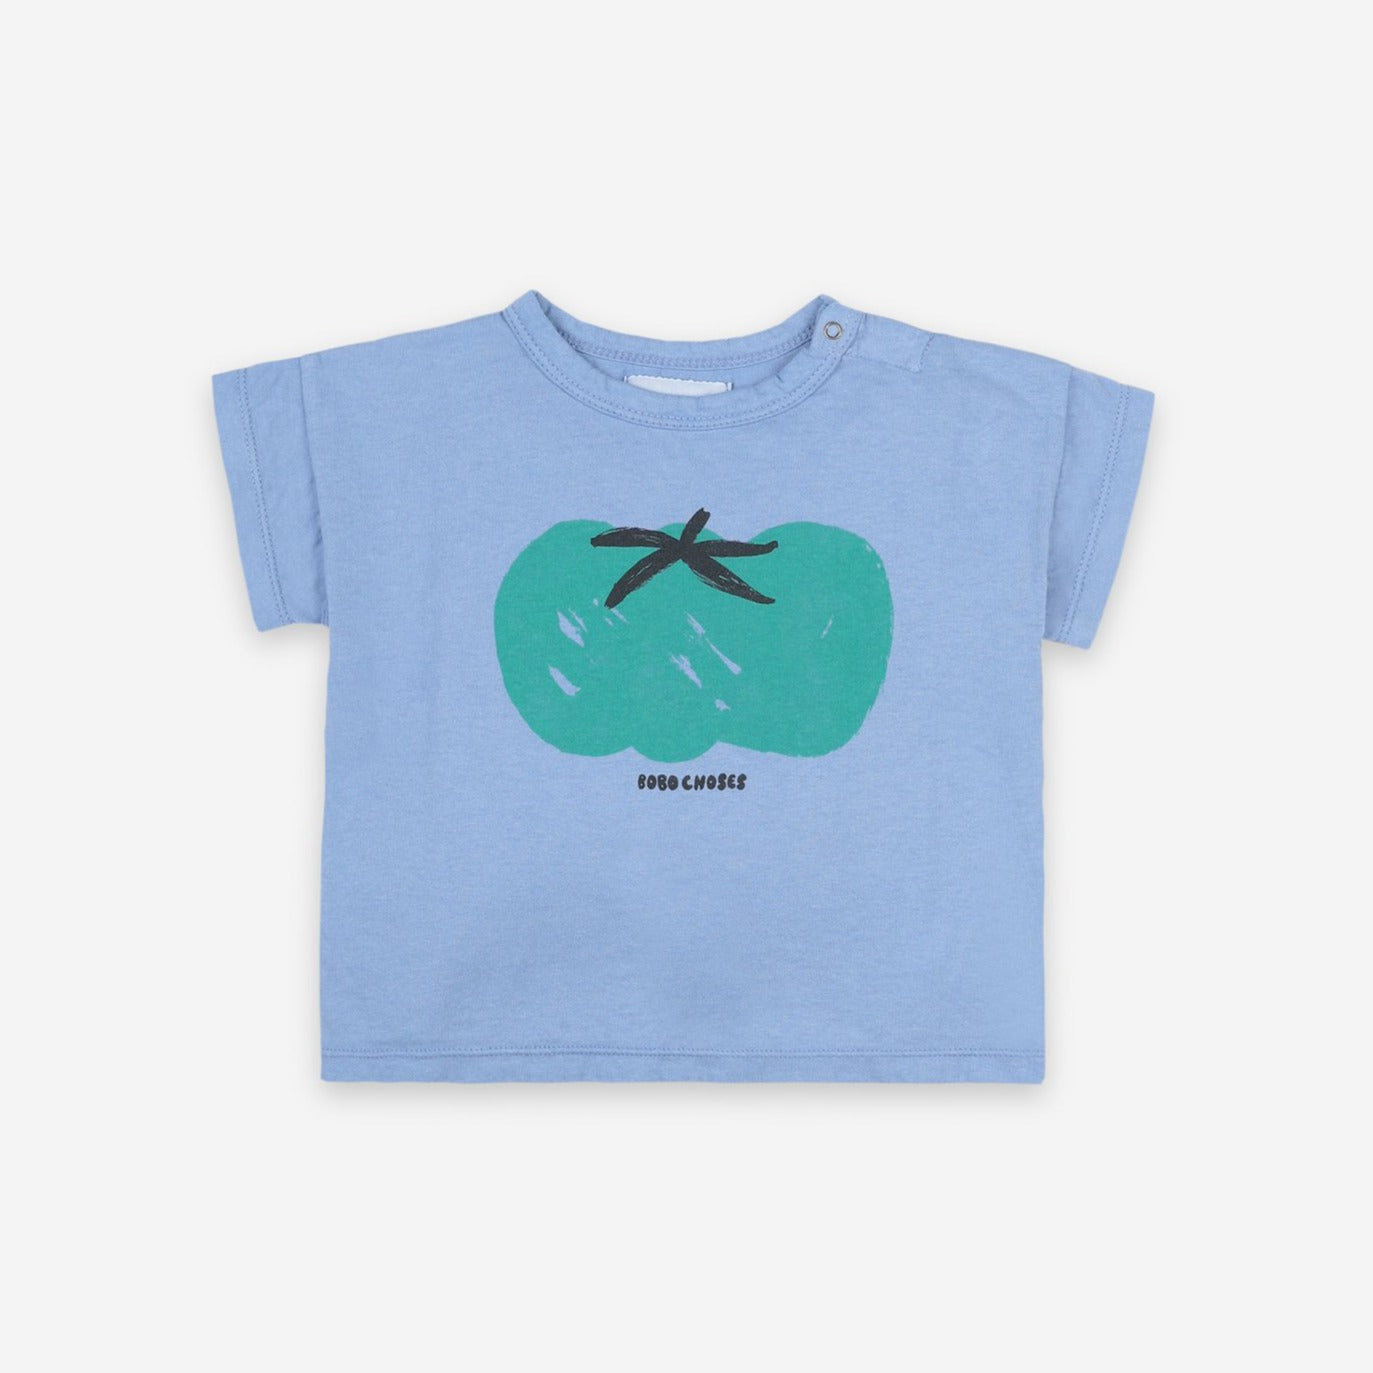 Bobo Choses tomato baby tee, powder blue